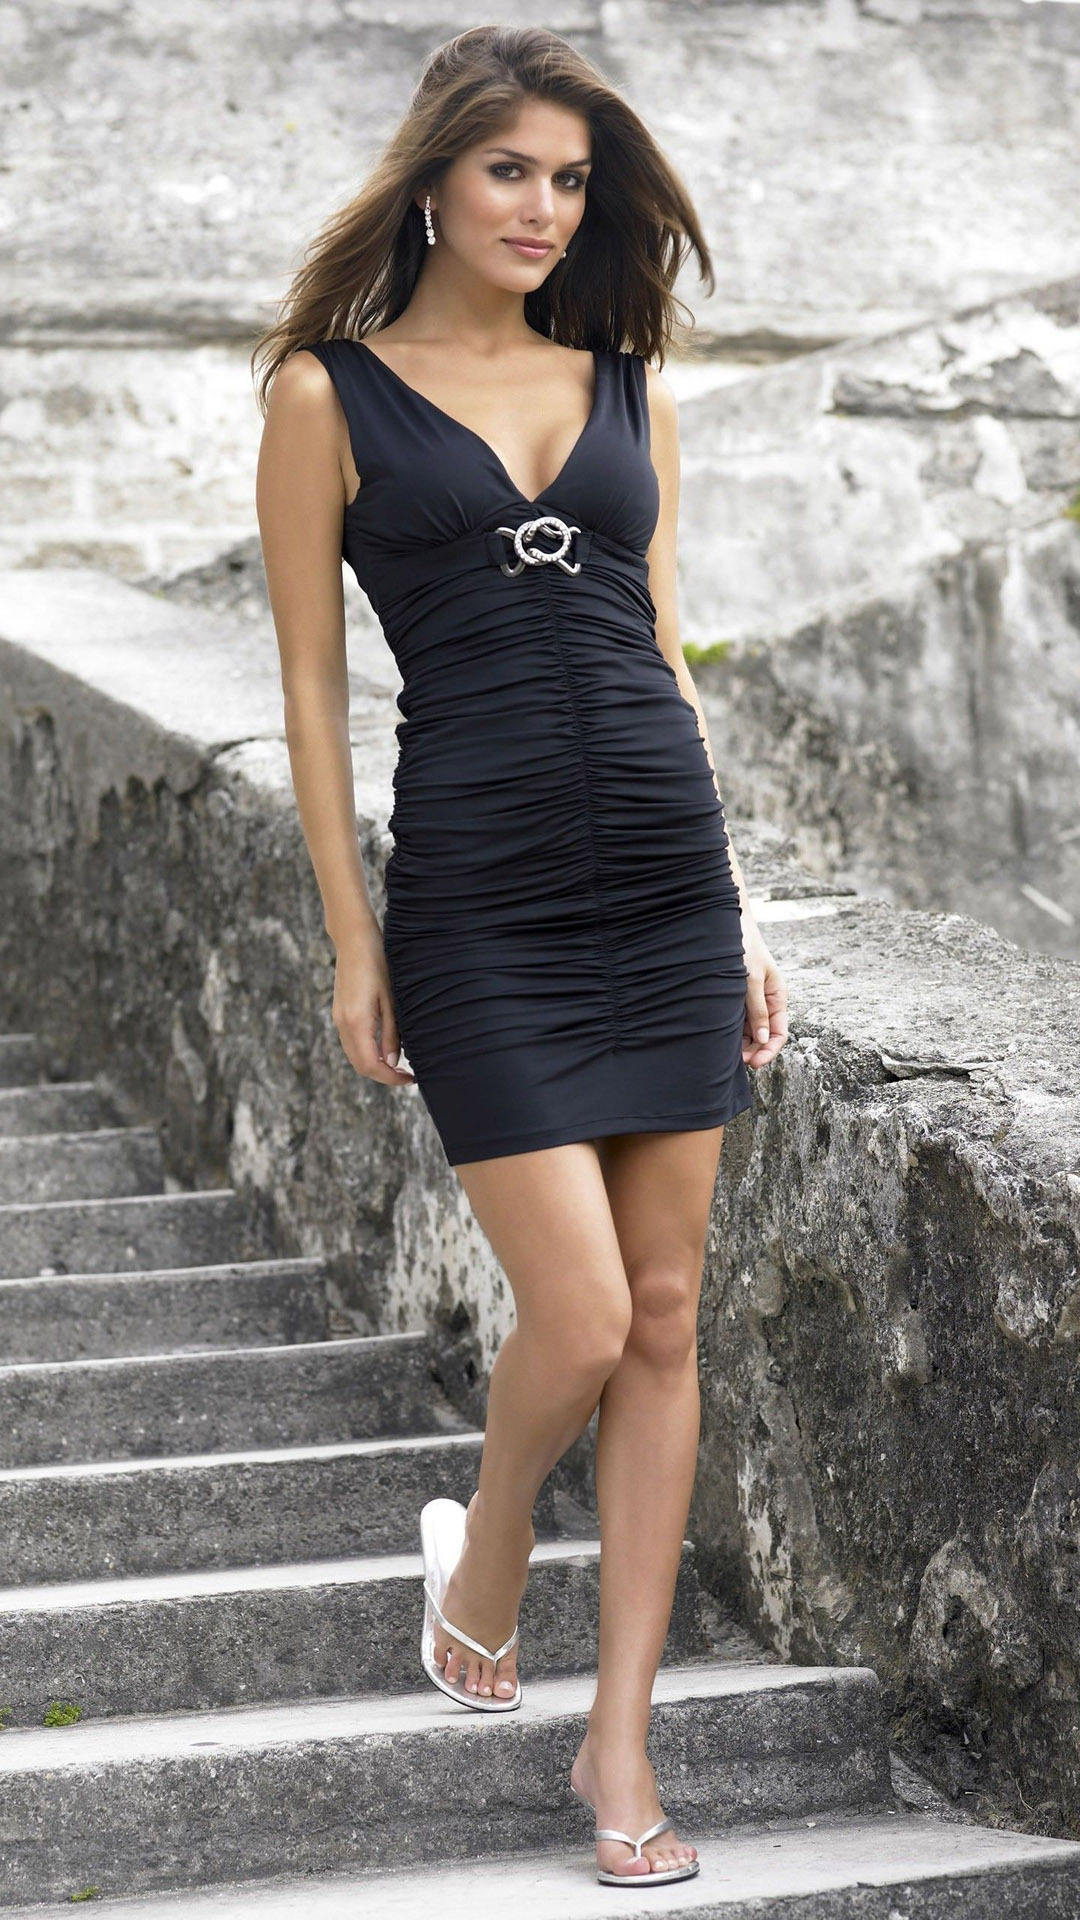 Anahi Gonzales htc one wallpaper